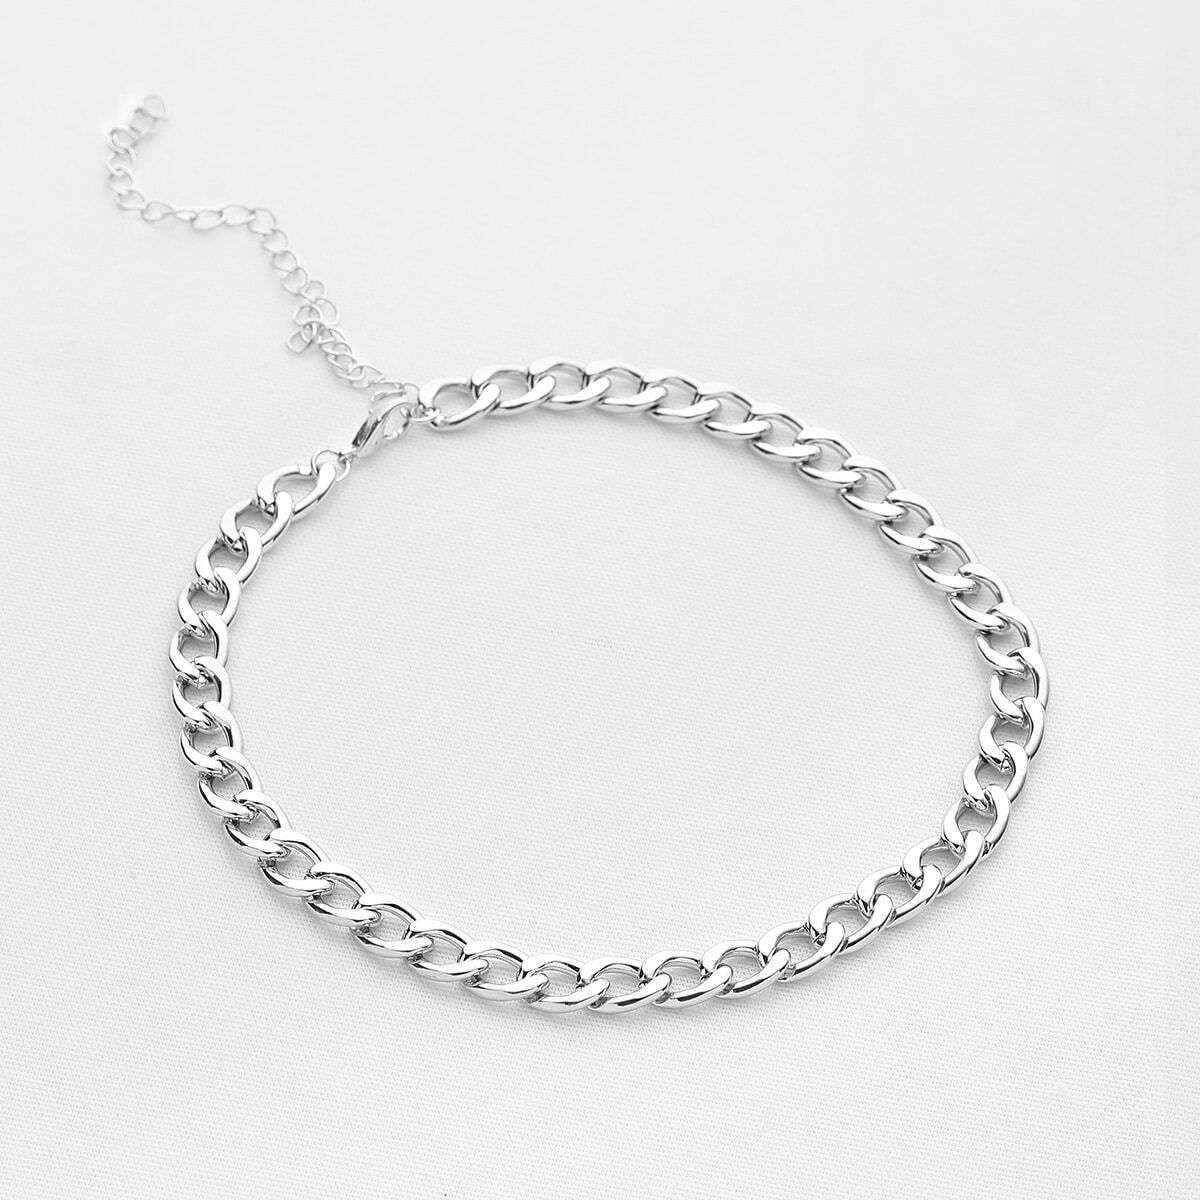 - Chain Choker Necklace